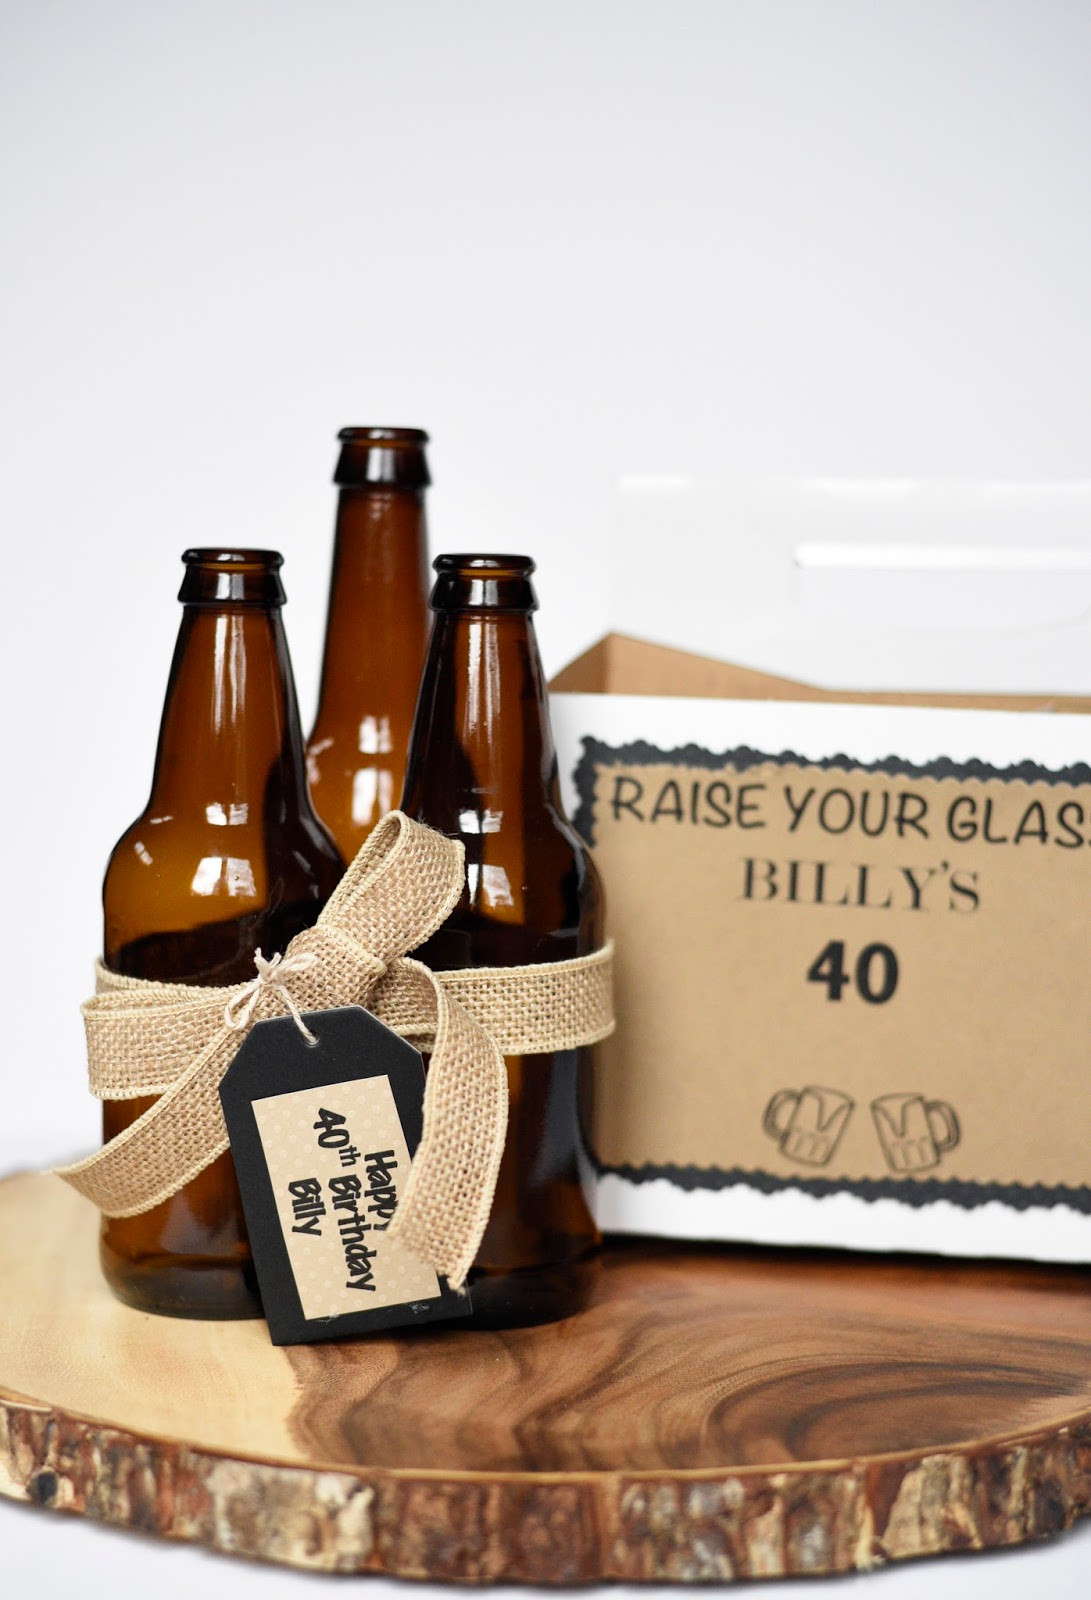 40Th Birthday Gift Ideas For Him  40th Birthday Party Ideas For Him Home with Keki